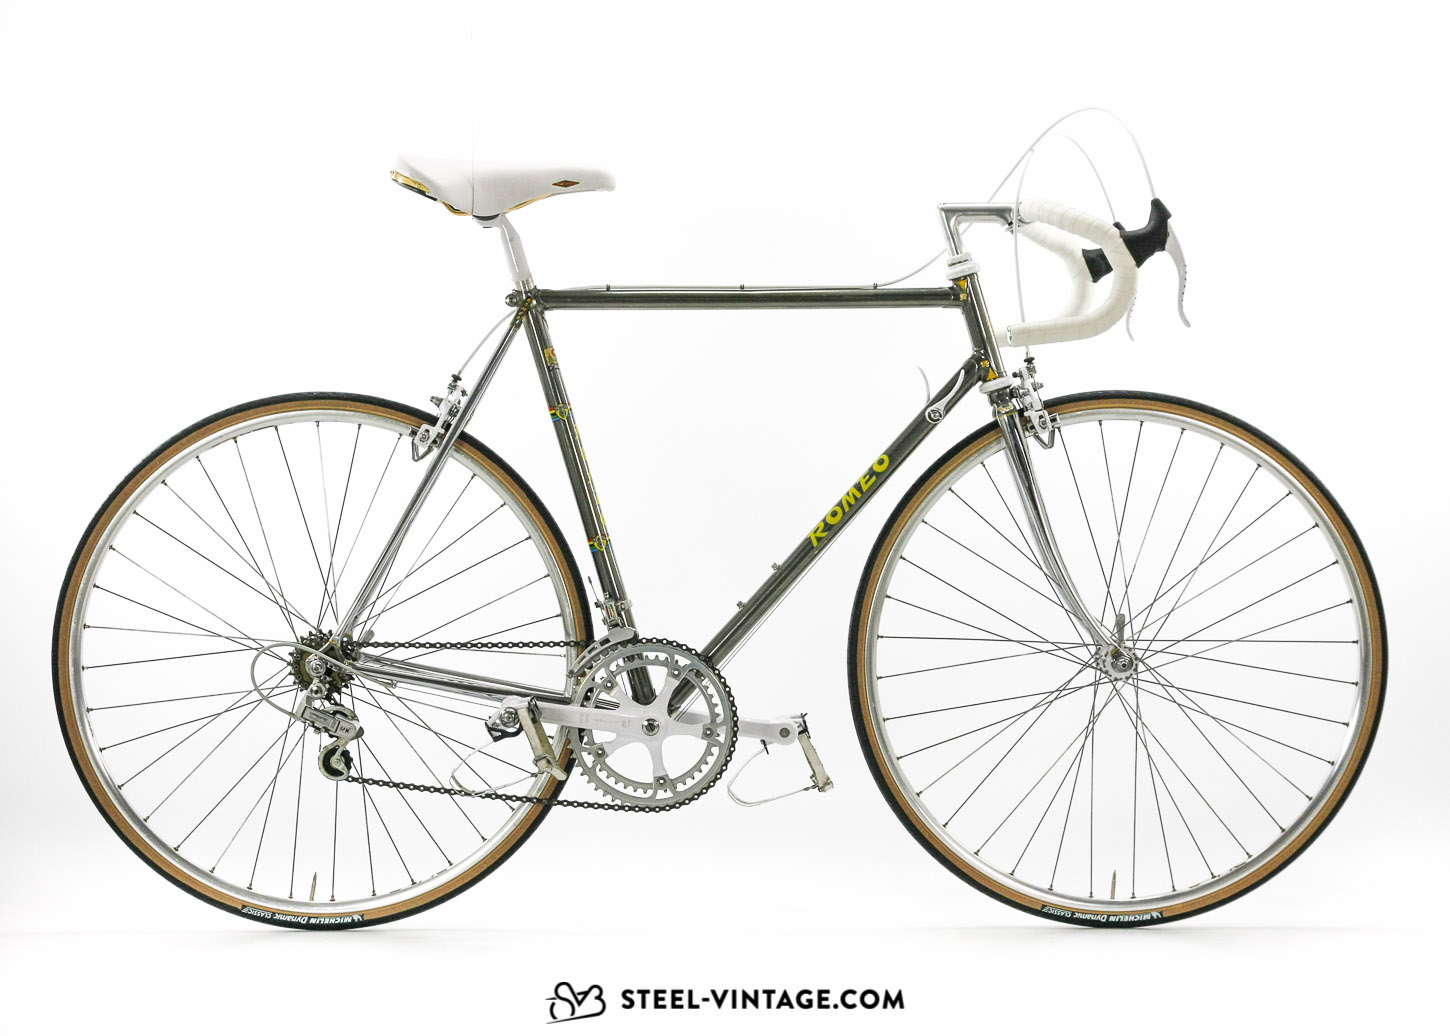 Cicli Romeo Classic Road Bicycle 1980s